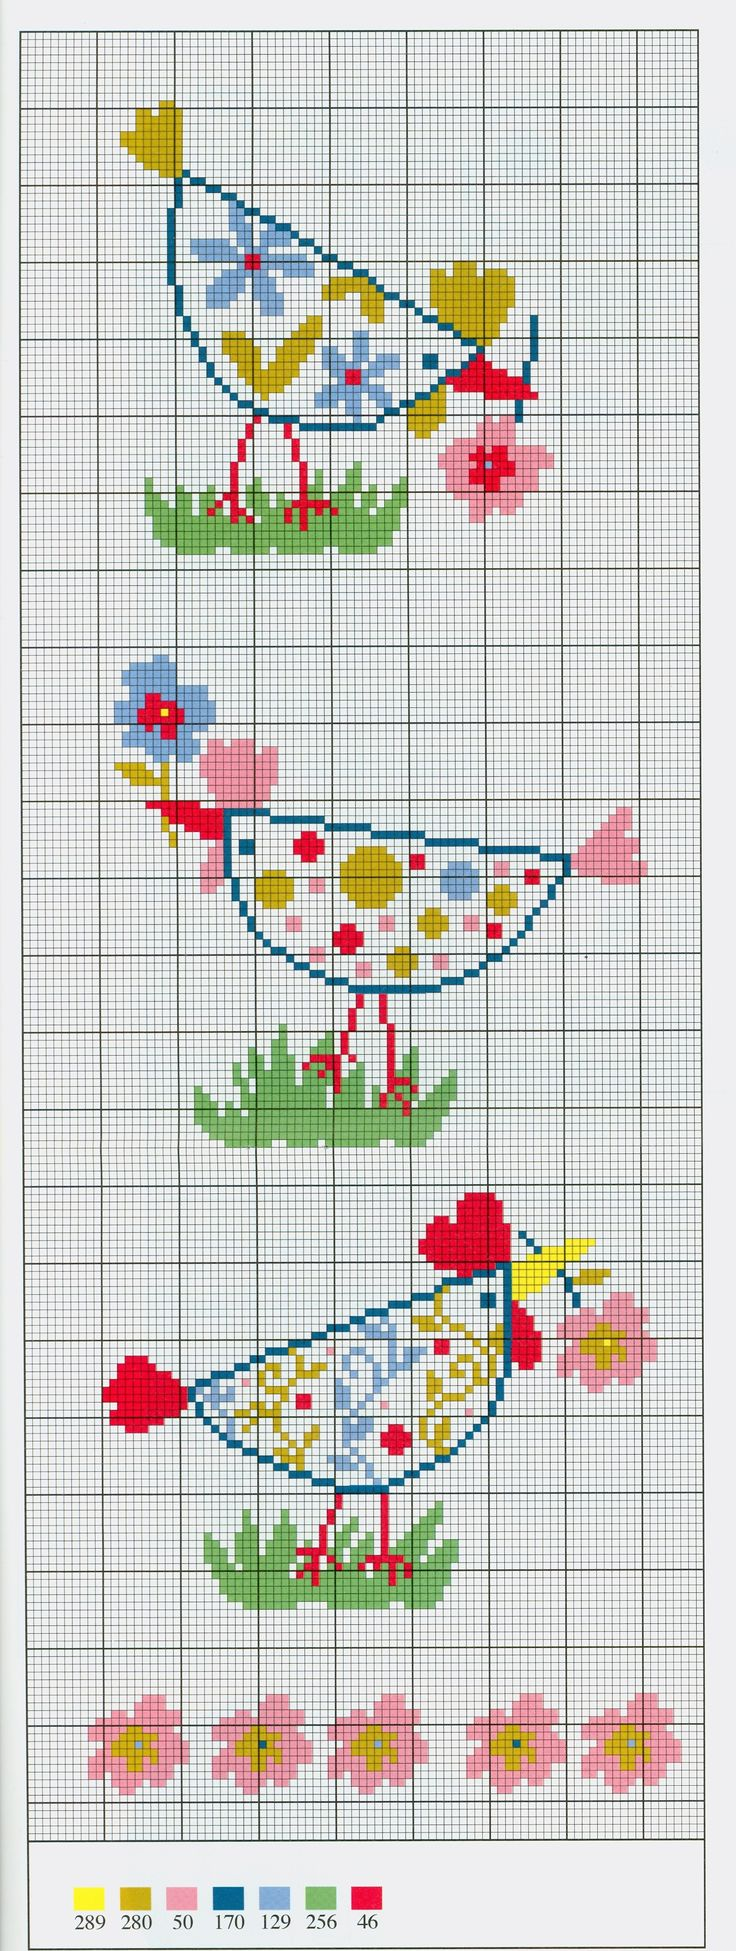 Chickens cross stitch